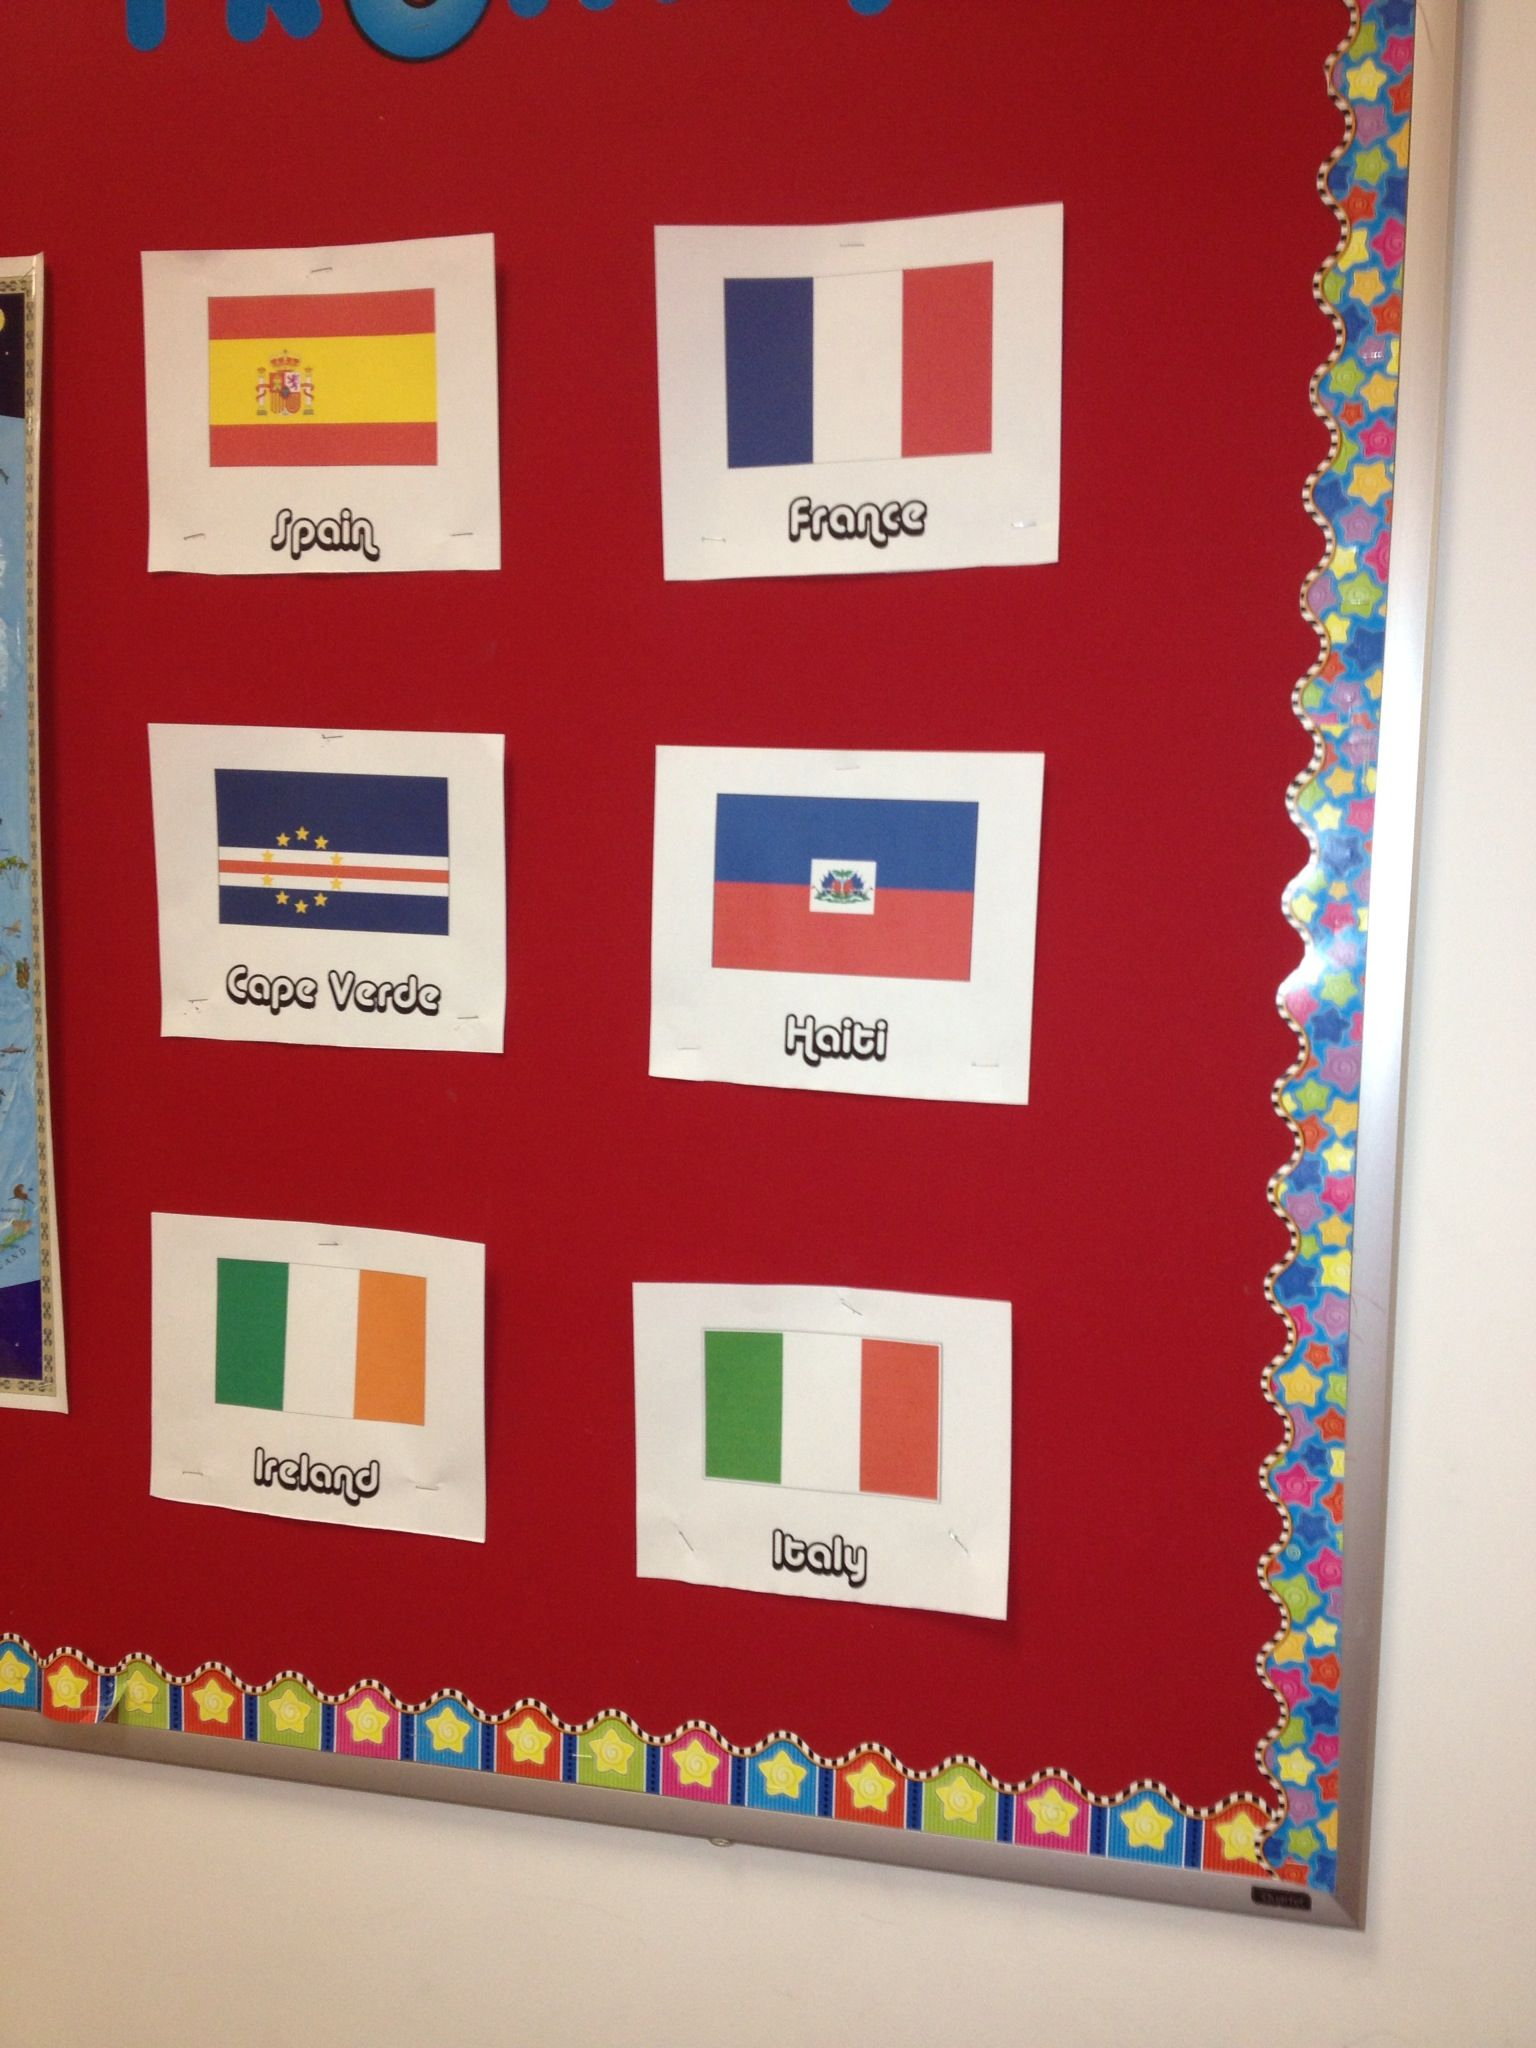 Countries I chose for the country study portion of the immigration unit.